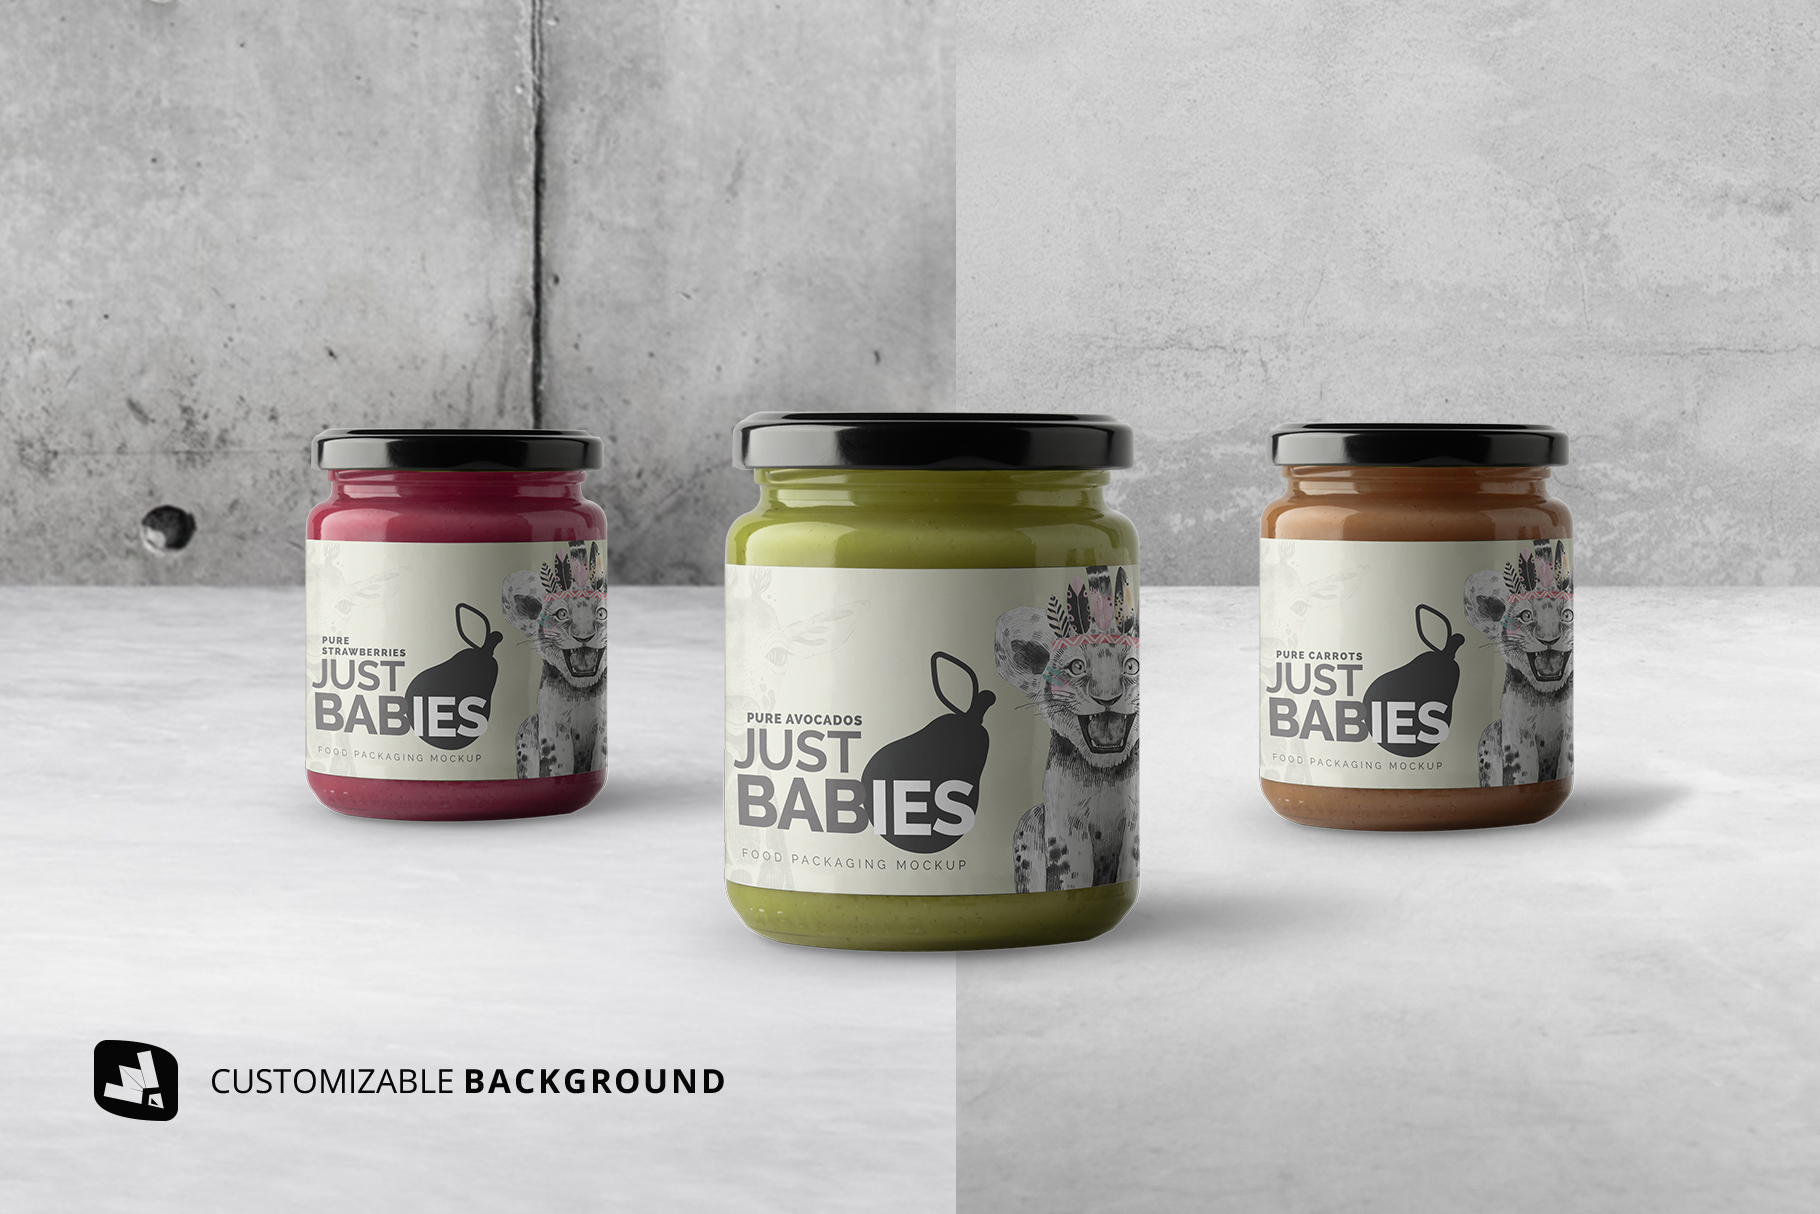 background options of the organic baby food packaging mockup